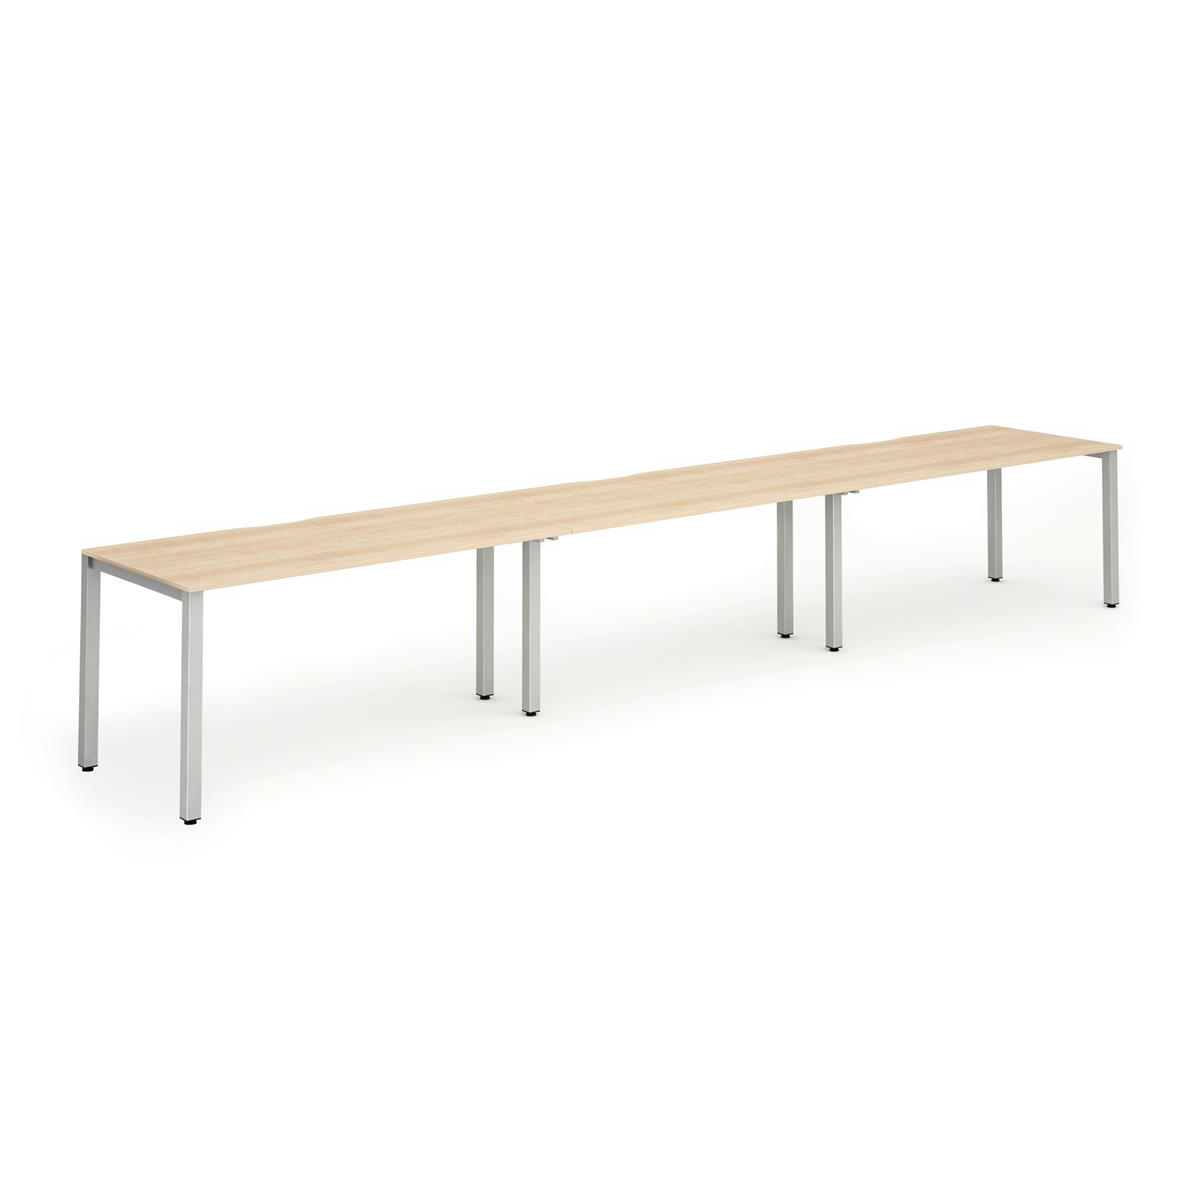 Trexus Bench Desk 3 Person Side to Side Configuration Silver Leg 3600x800mm Maple Ref BE416